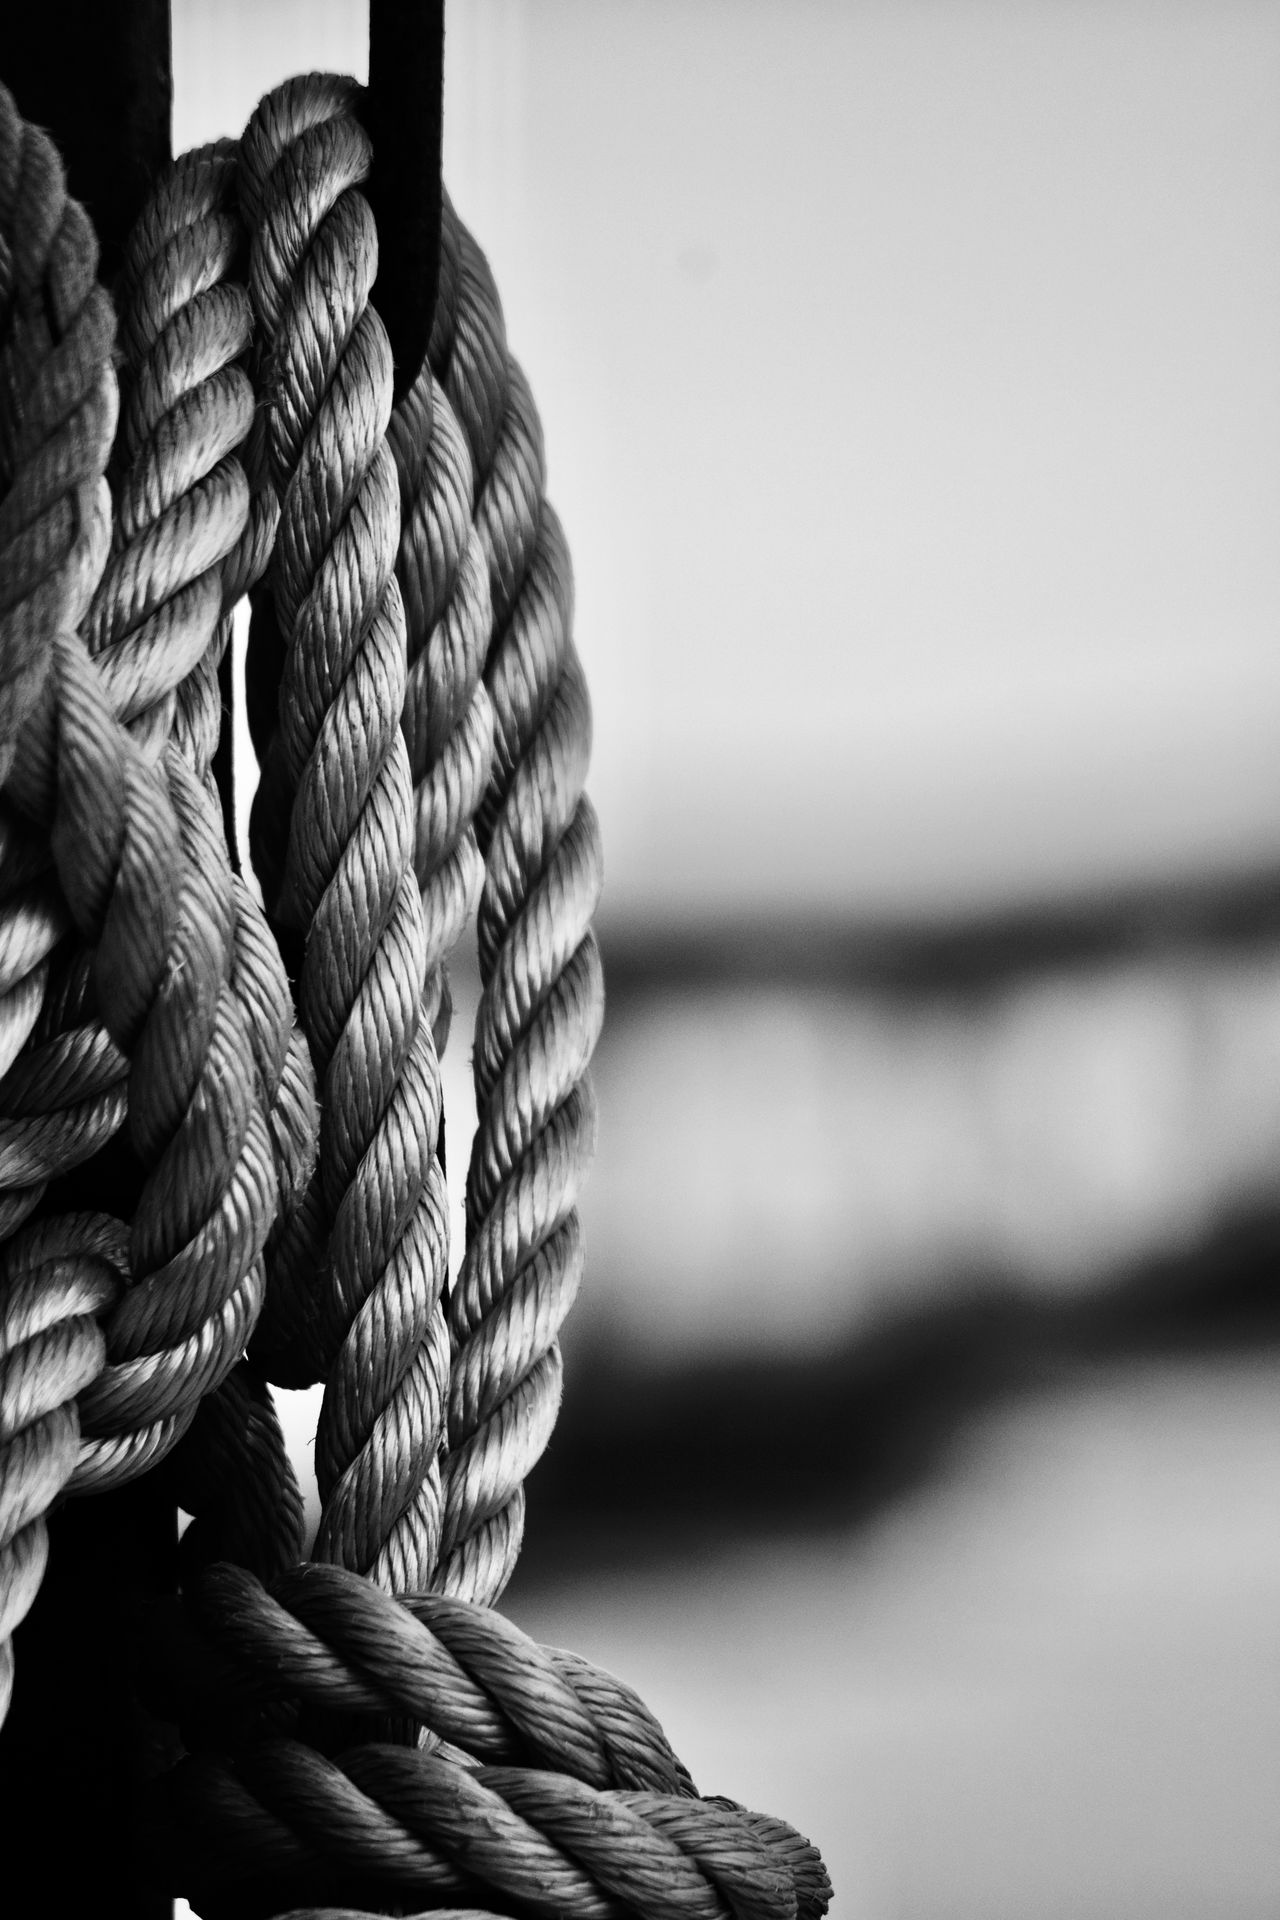 Blackandwhite Close-up Day Nature Nautical Vessel Nikon Nikonphotography No People Outdoors Pulley Reflection Roap Sea Water